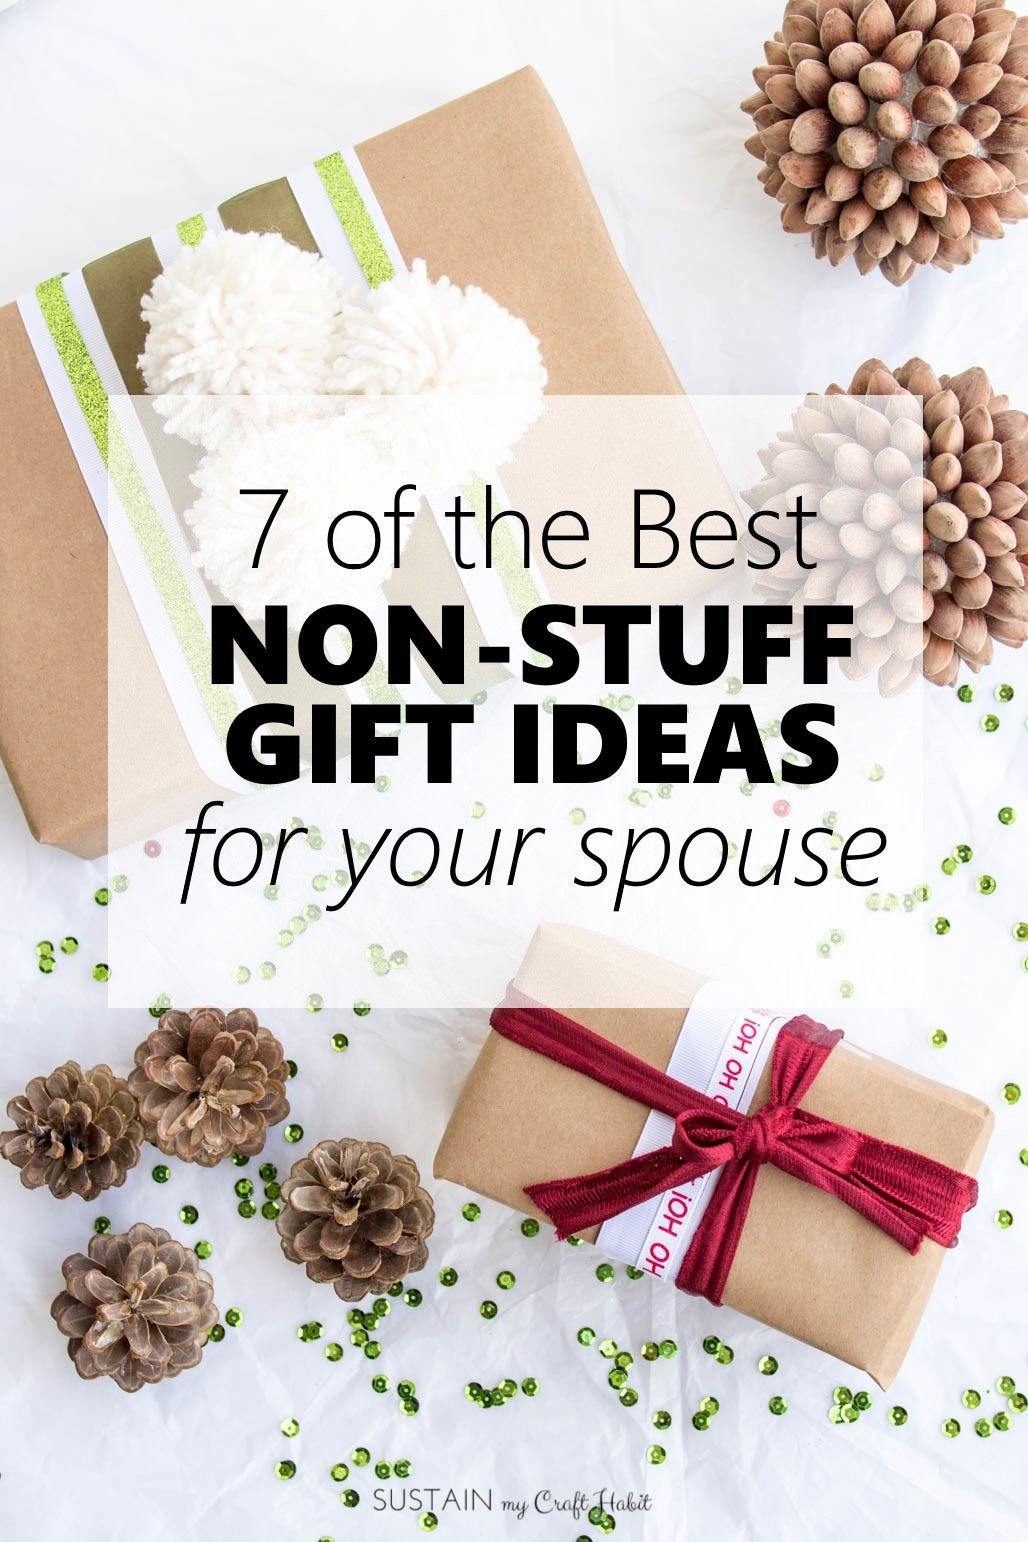 Best Non Stuff Gift Ideas For Your Spouse Throughtful Gifts For Husband Or Wife Meaningful G Unique Christmas Gifts Spouse Gifts Meaningful Christmas Gifts